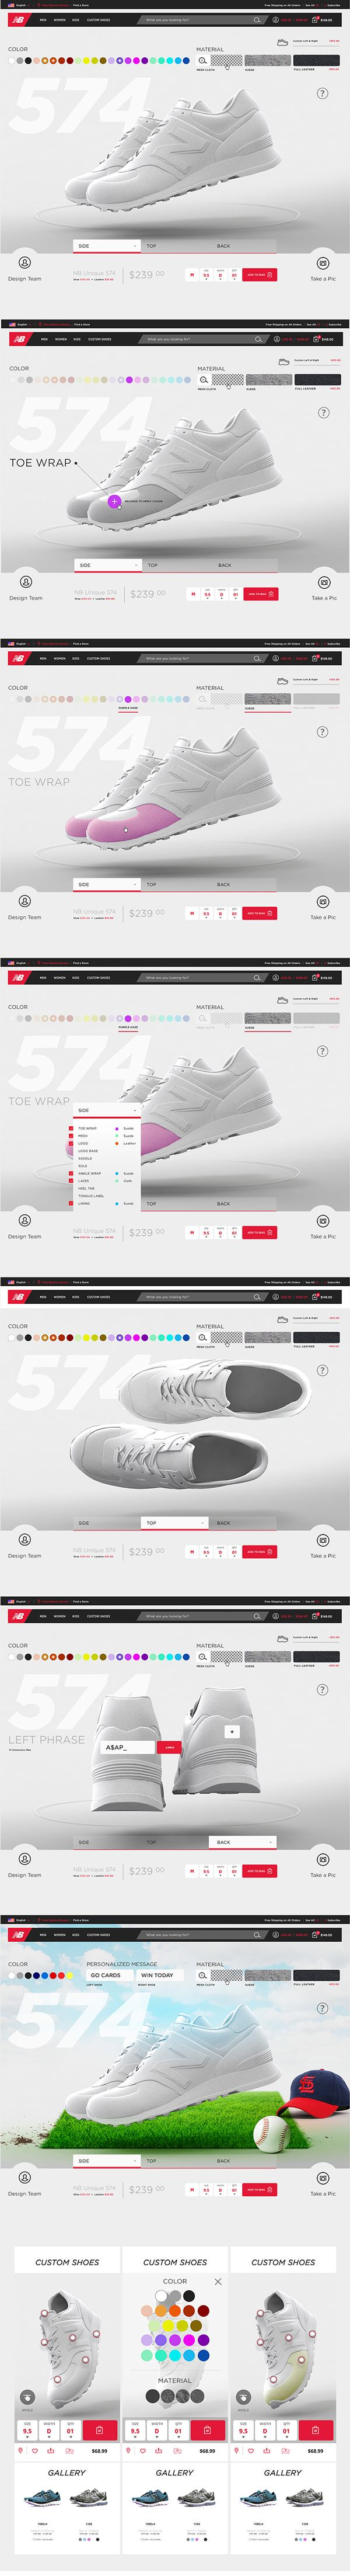 New Balance on Web Design Served